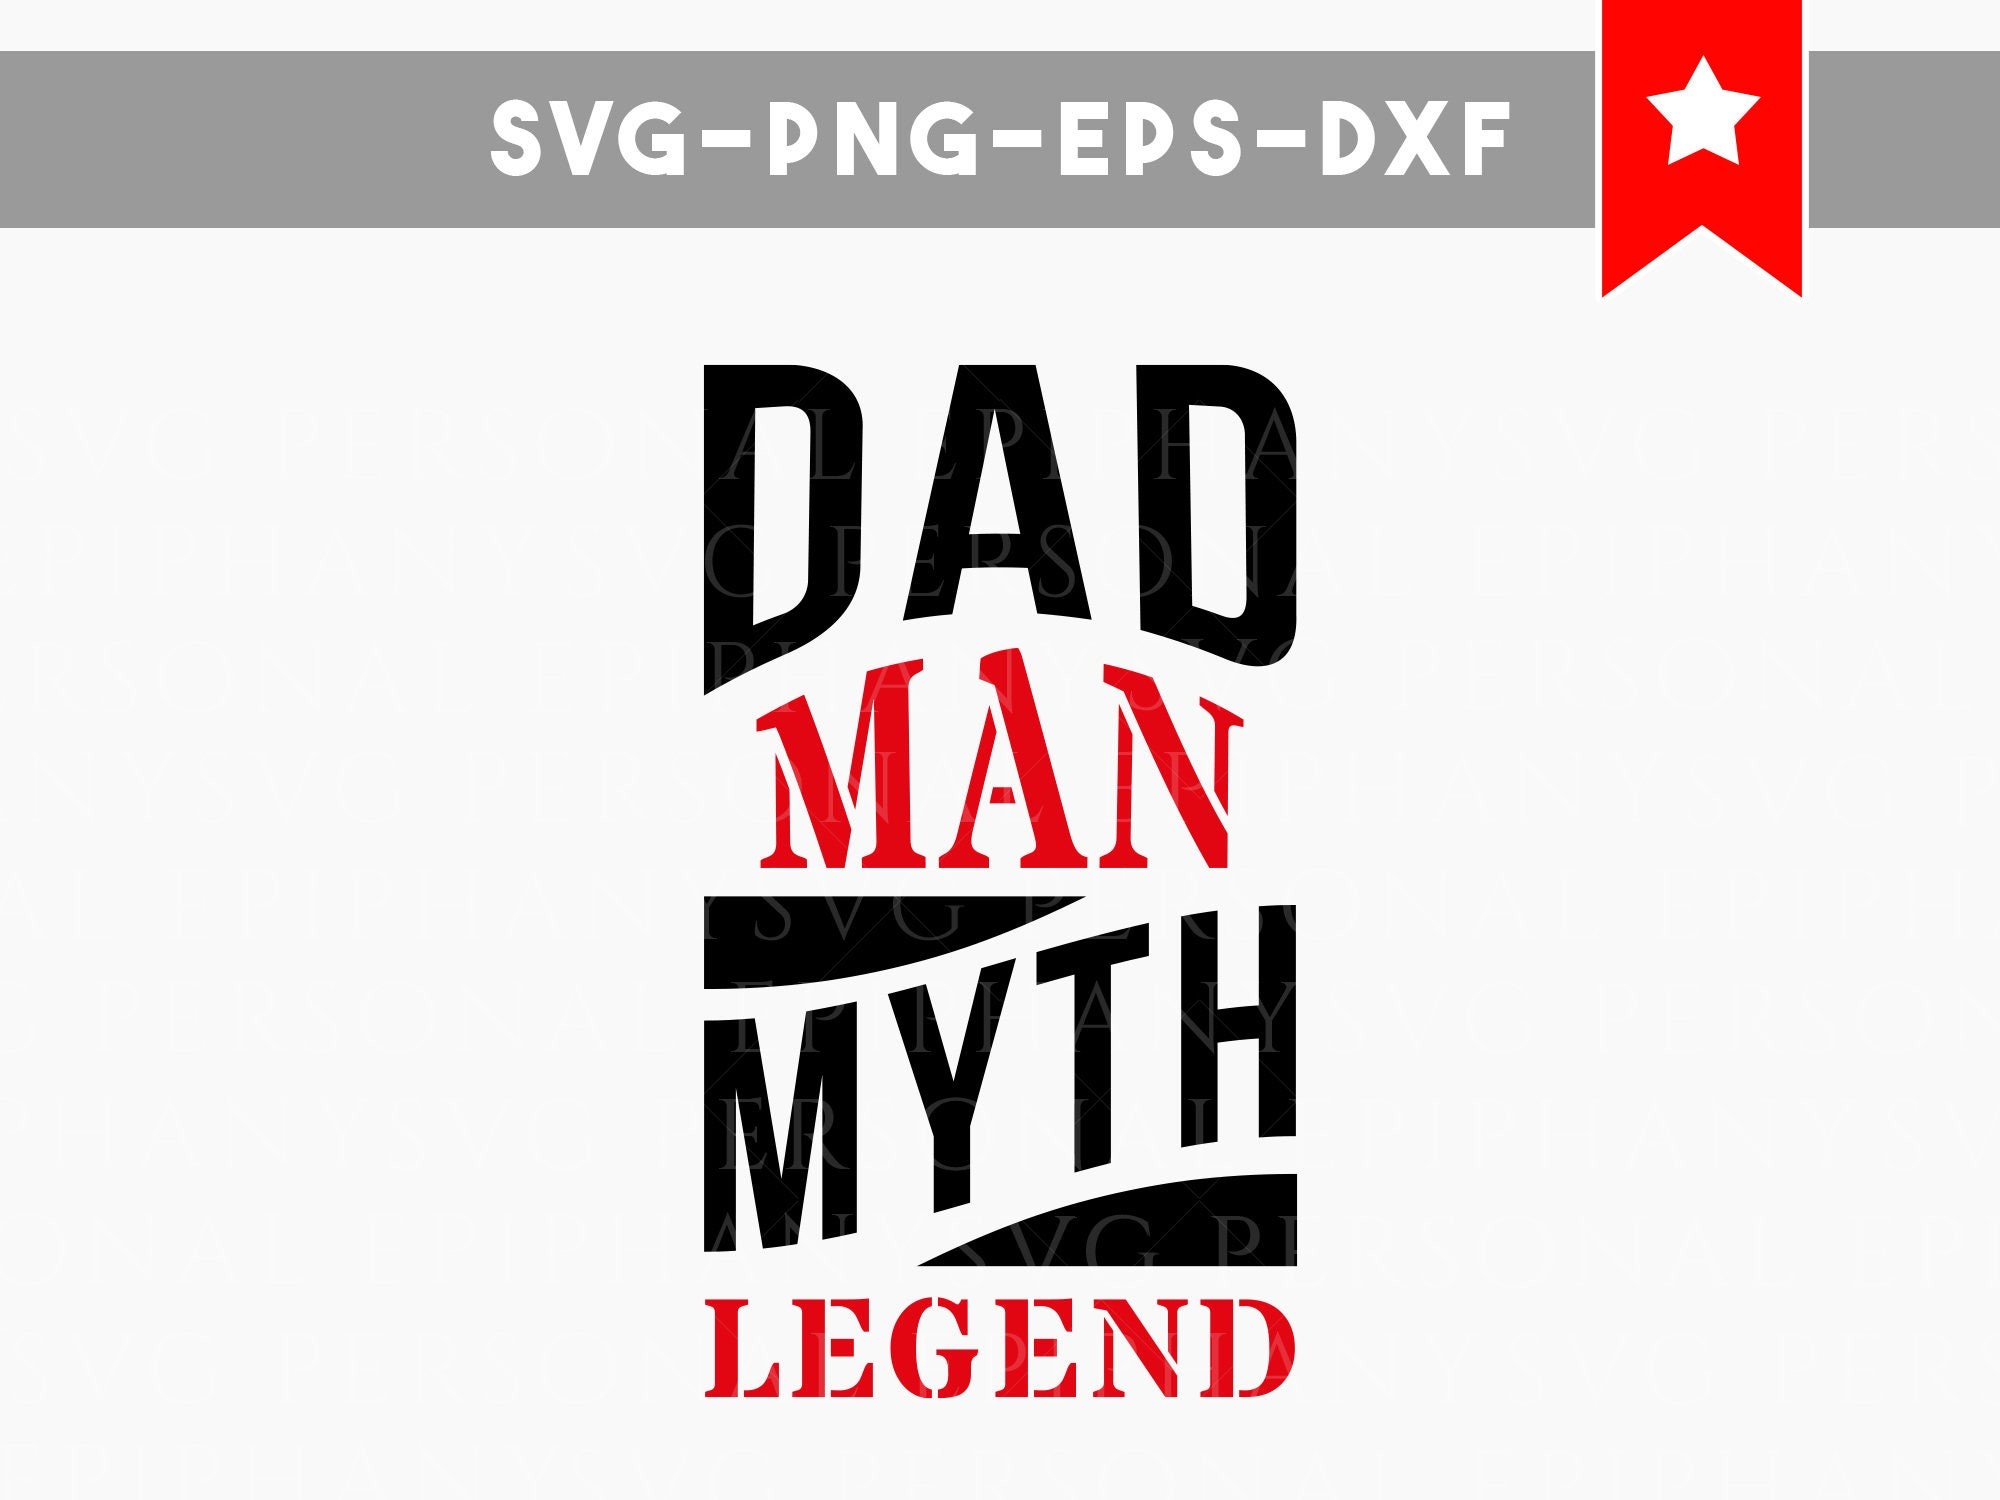 Dad man myth legend svg fathers day svg dad svg best father svg dad man myth legend svg fathers day svg dad svg best father svg cricut designs svg files cricut svg files silhouette cricut downloads from publicscrutiny Gallery